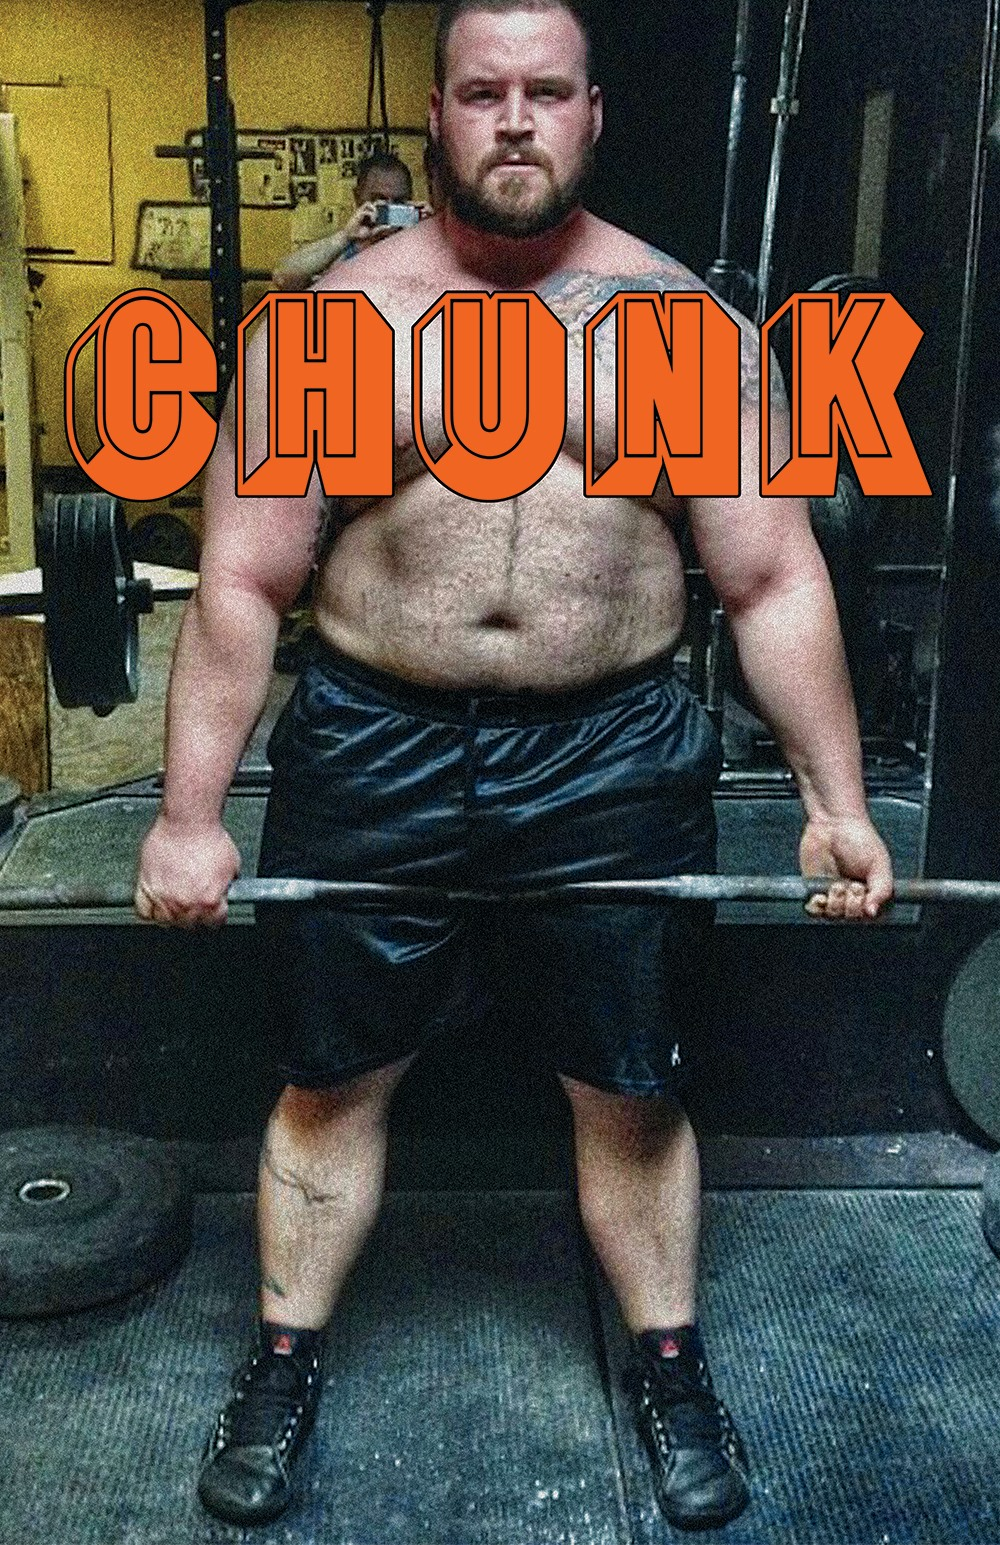 A CHUNK party poster.